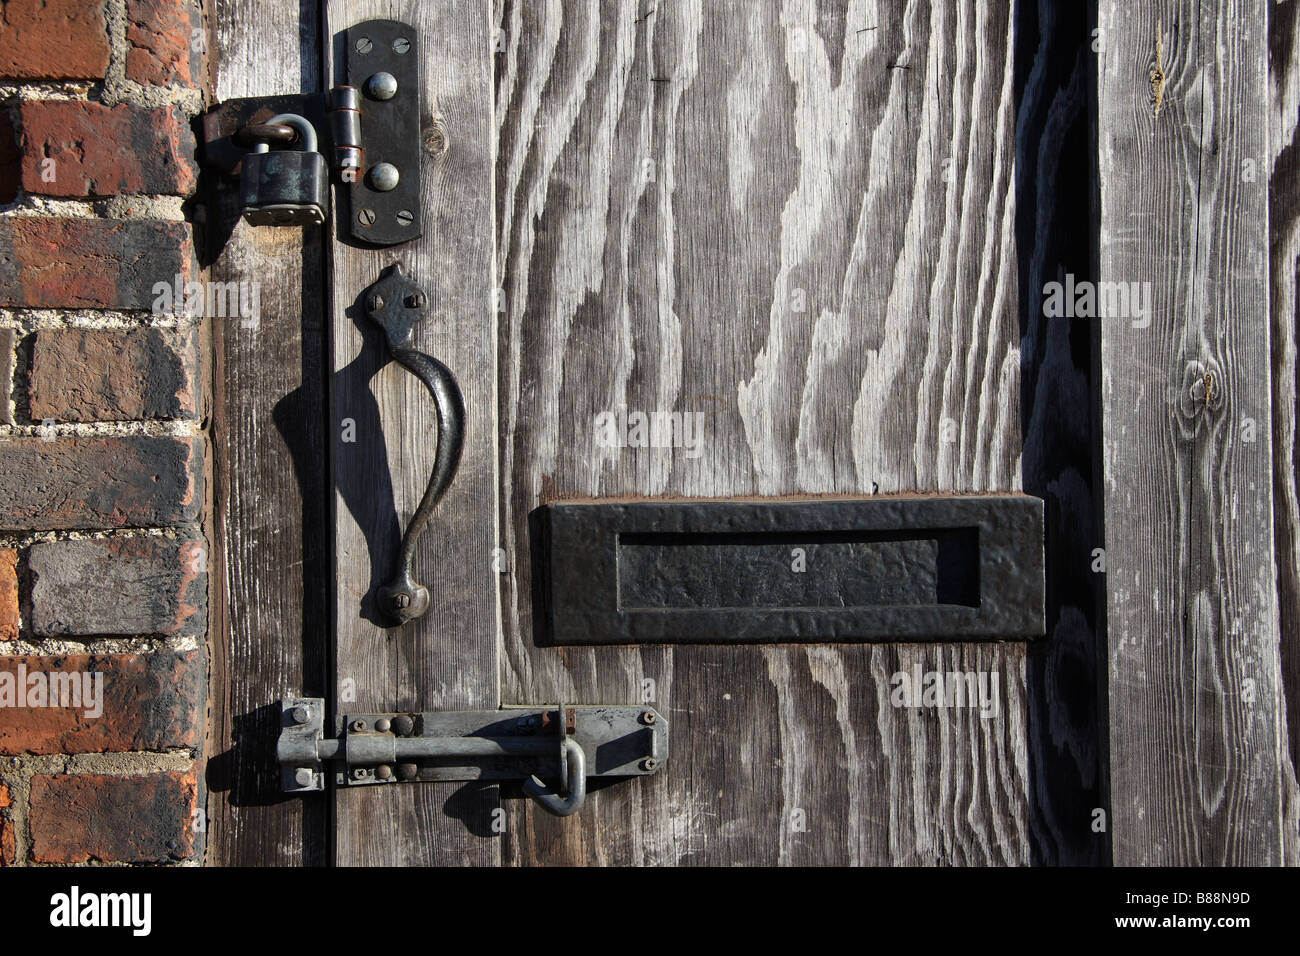 padlock bolt victorian barn hayloft hay bale loading door medway valley walk river medway yalding kent & Hayloft Door Stock Photos \u0026 Hayloft Door Stock Images - Alamy